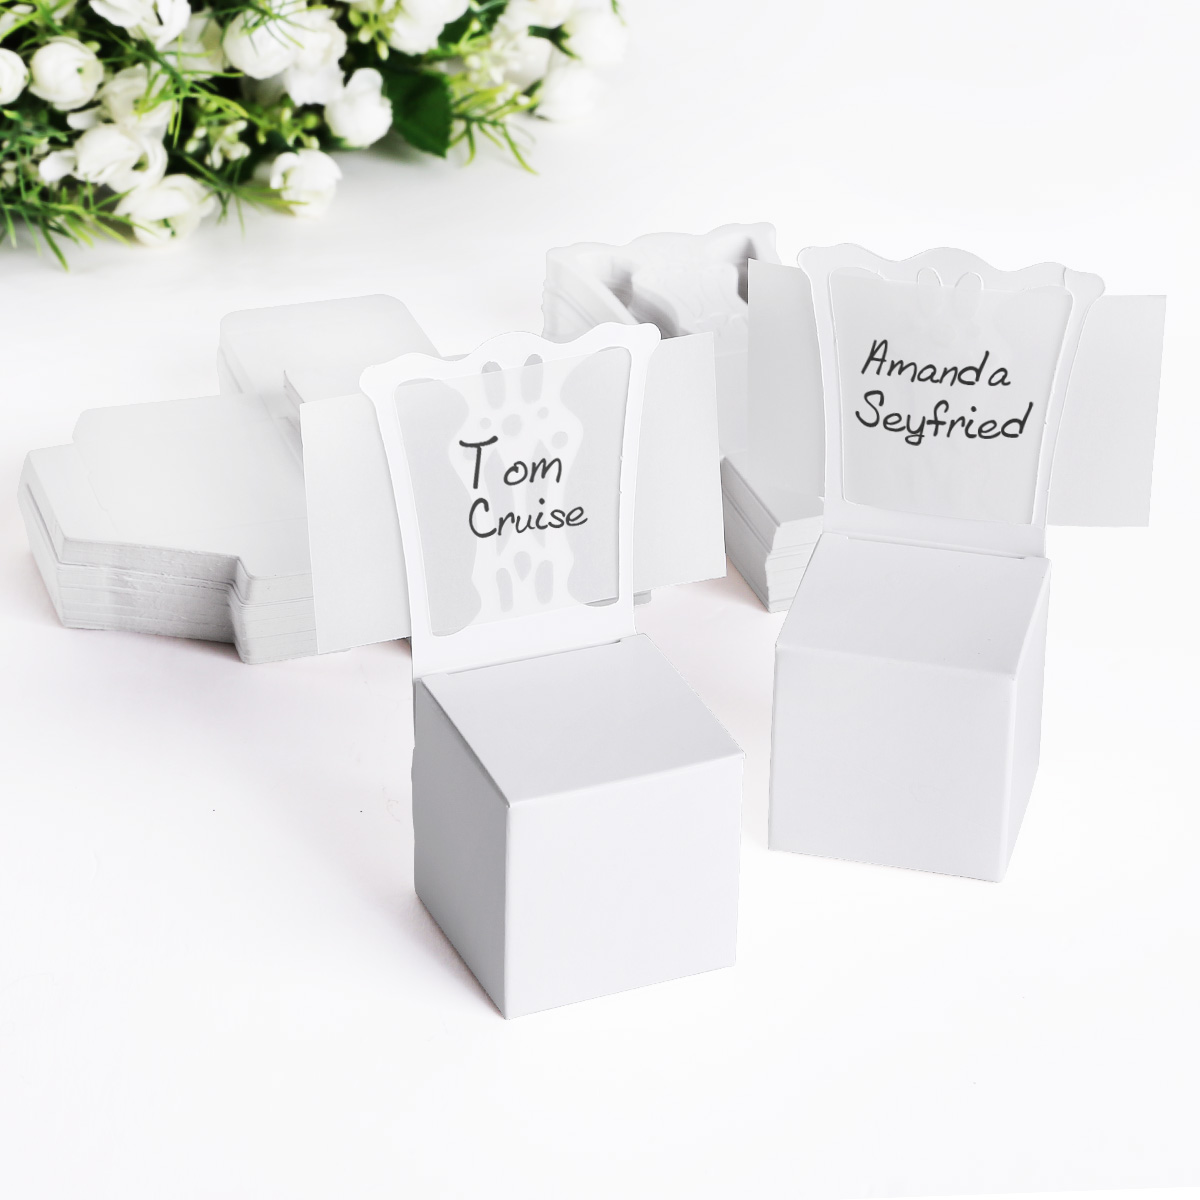 2b191c585883 Details about 50x White Chair Wedding Party Gift Favor Boxes Supplies Place  Name Cards Display